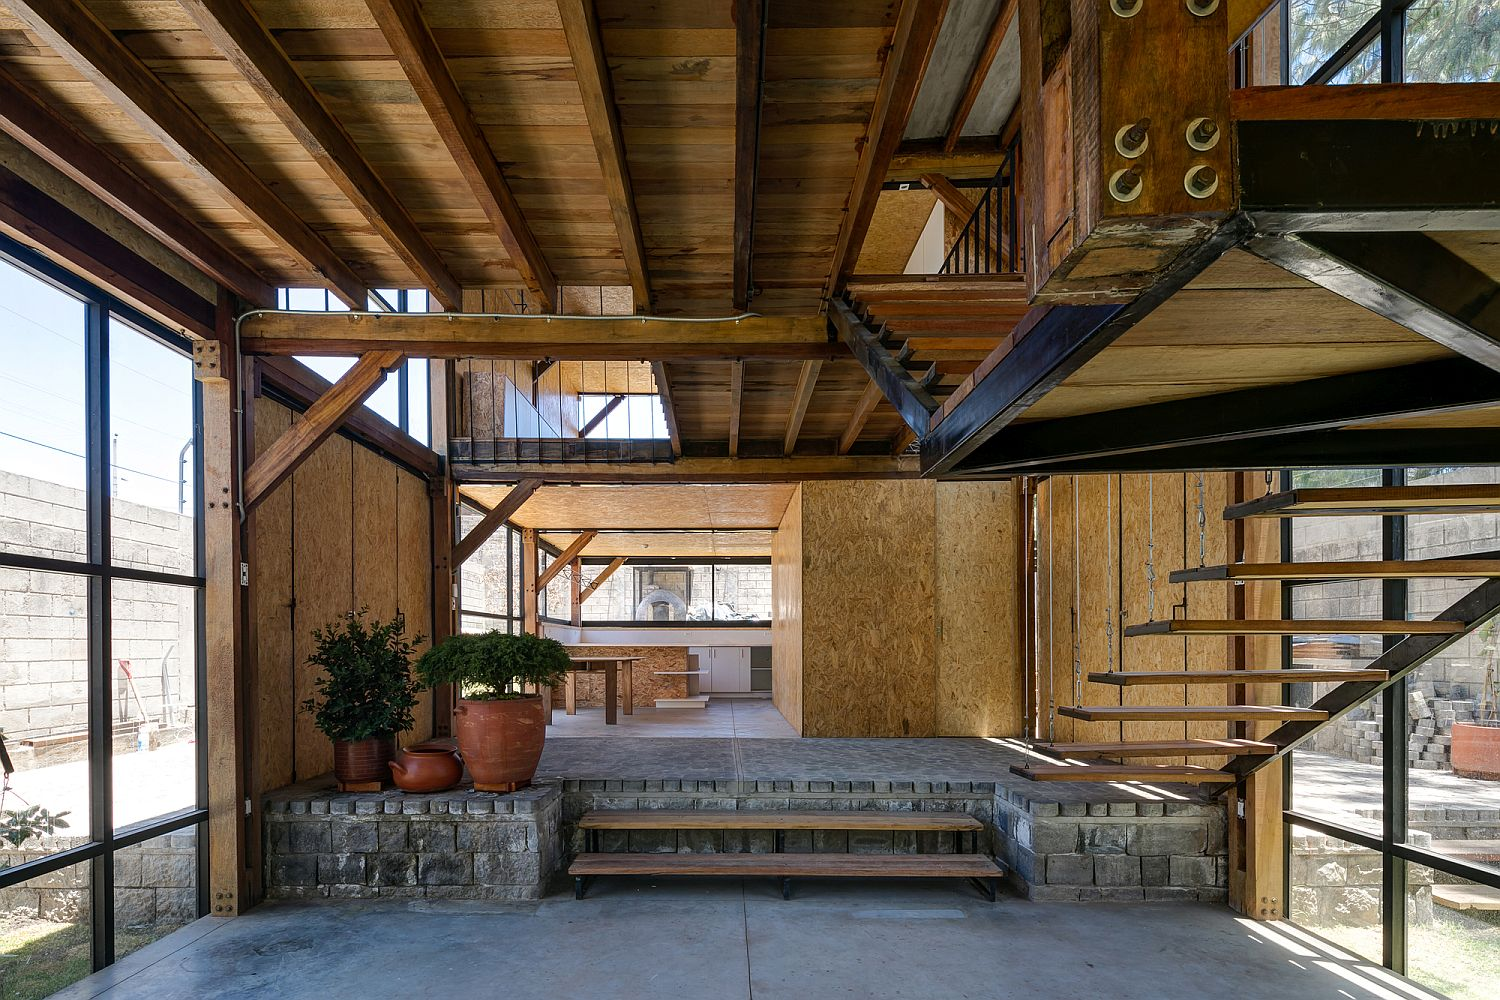 OSB panels, wooden boards and glass windows give the home a uniqe style of its own